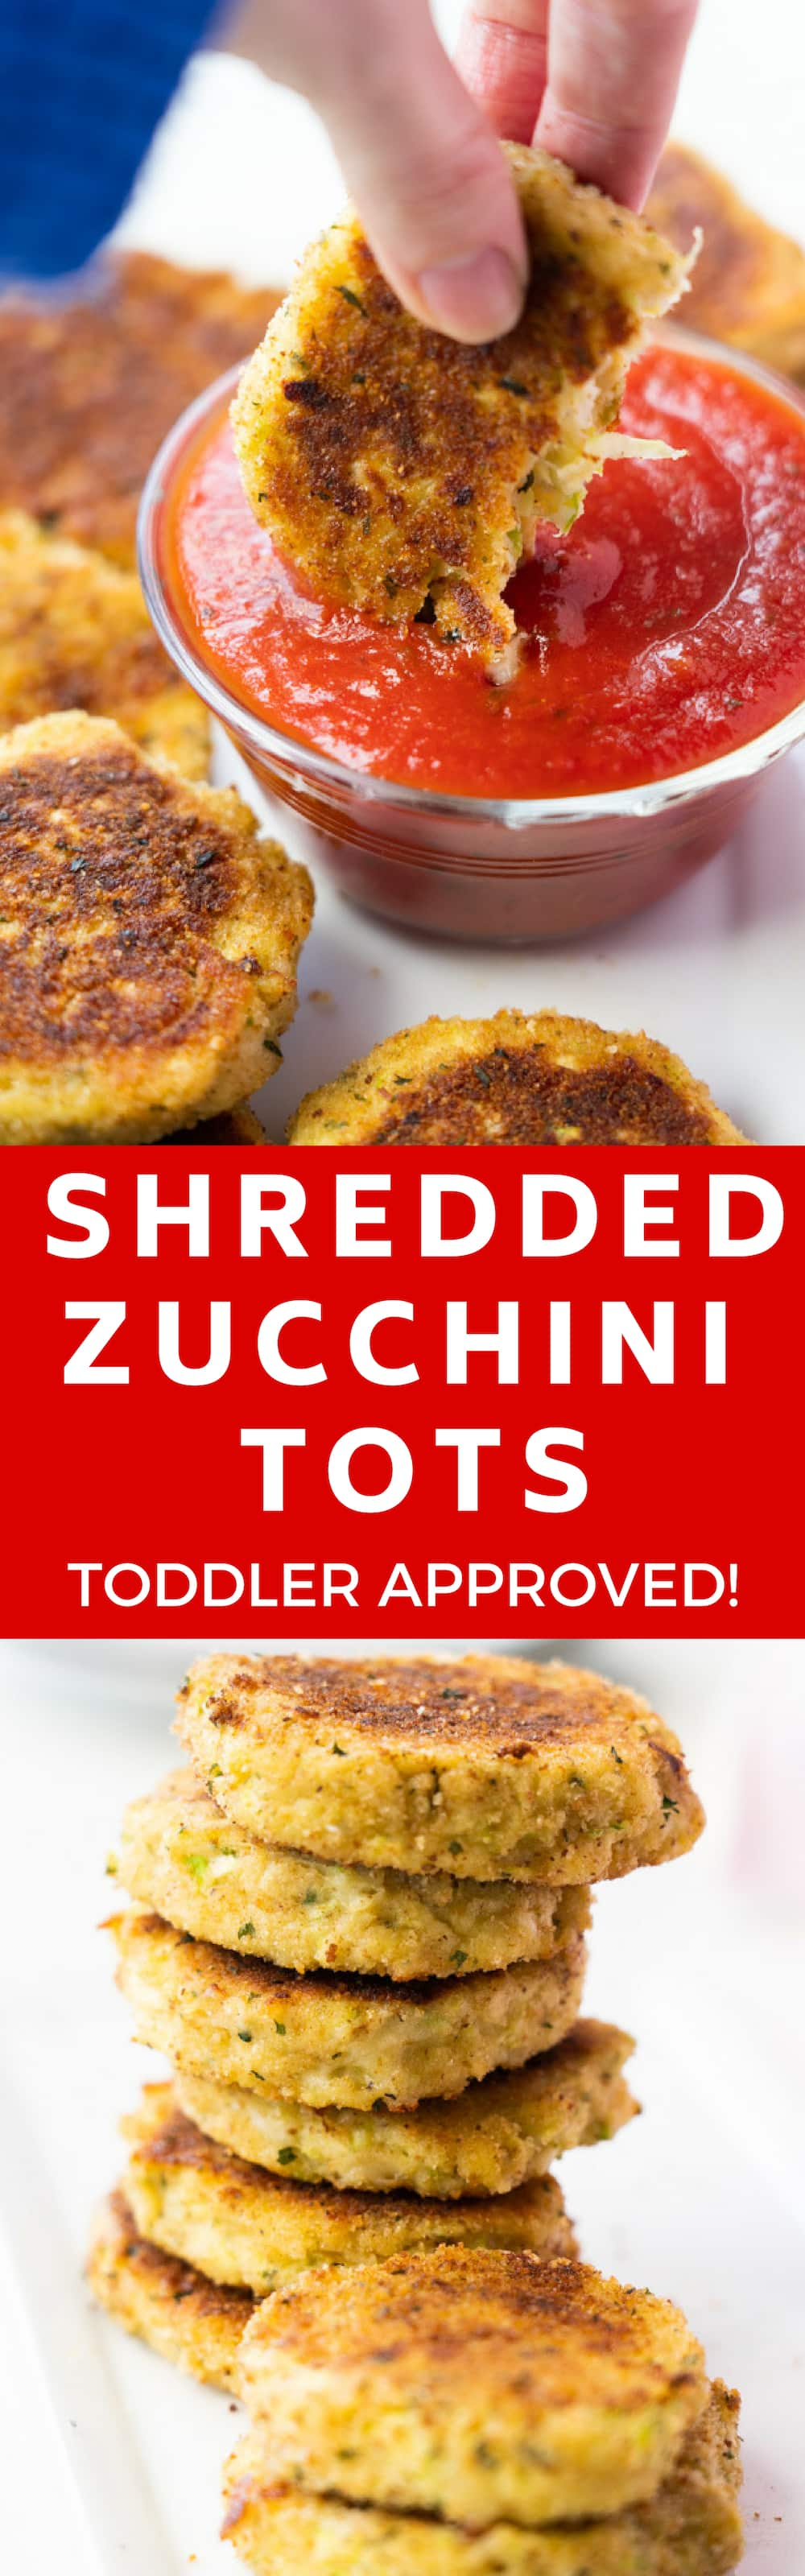 EASY to make zucchini tots recipe that your family is going to love - even your picky toddler! These healthy nuggets are ready in less than 20 minutes total and are 136 calories a serving. Low carb and keto recipe!